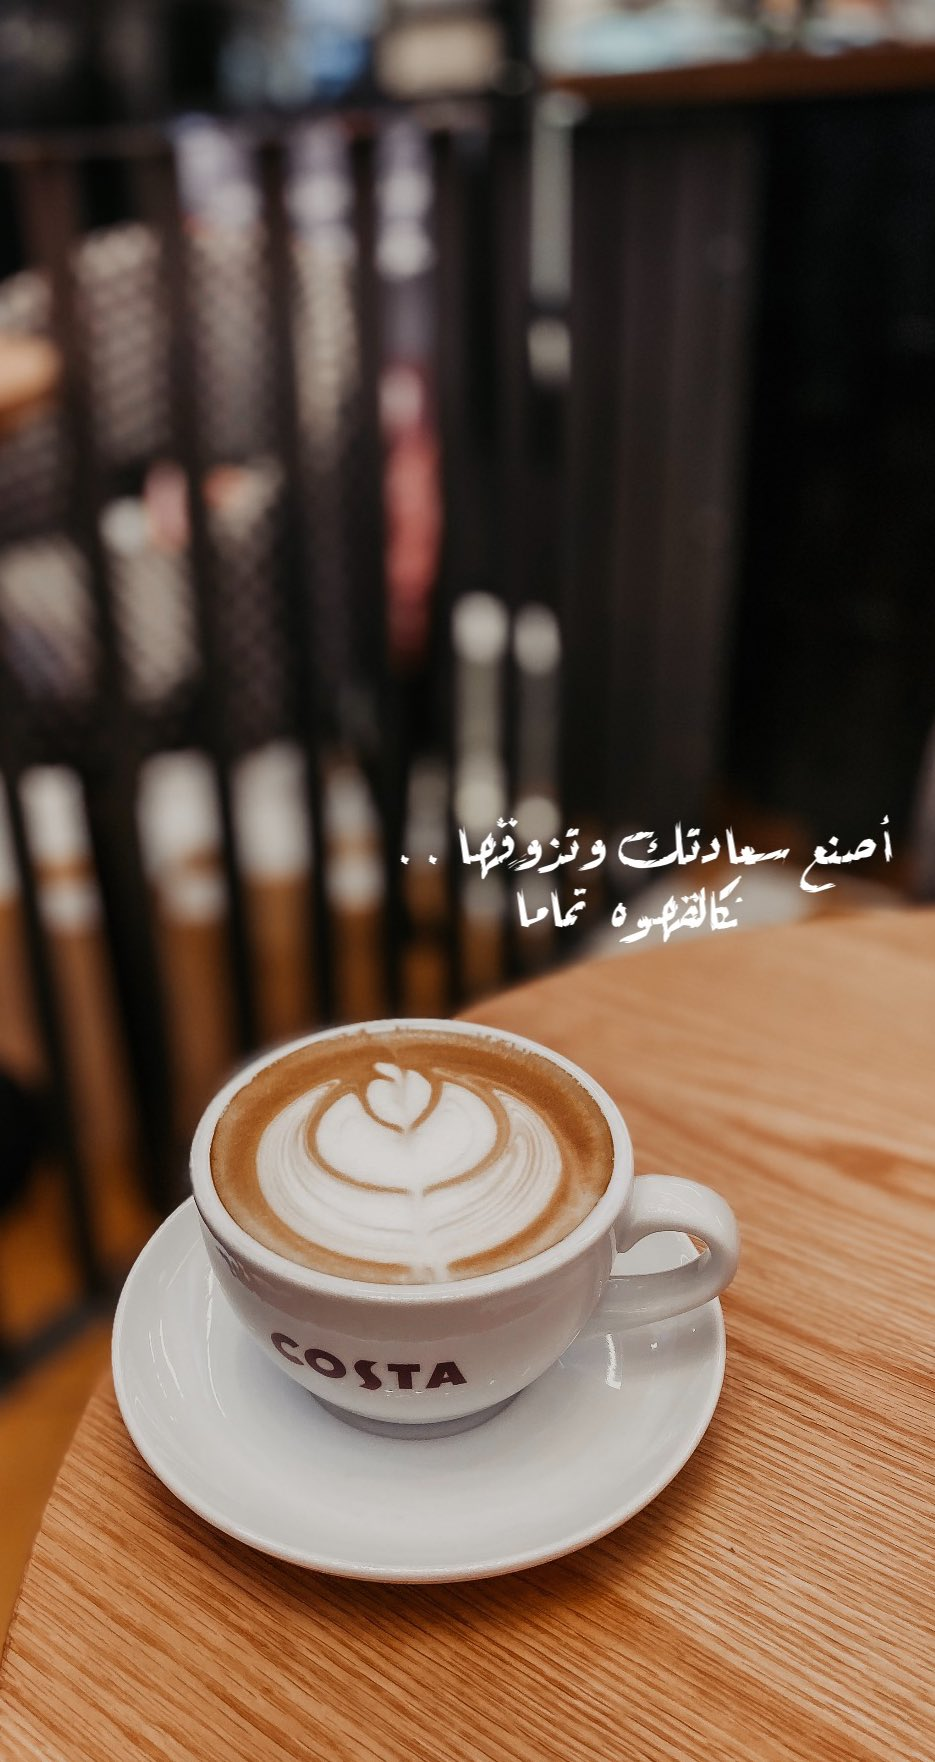 𝚂𝙰𝚁𝙰 𝙰𝙻𝙷𝙾𝚄𝙻𝙸 On Twitter Coffee Words Iphone Wallpaper Quotes Love Coffee Quotes